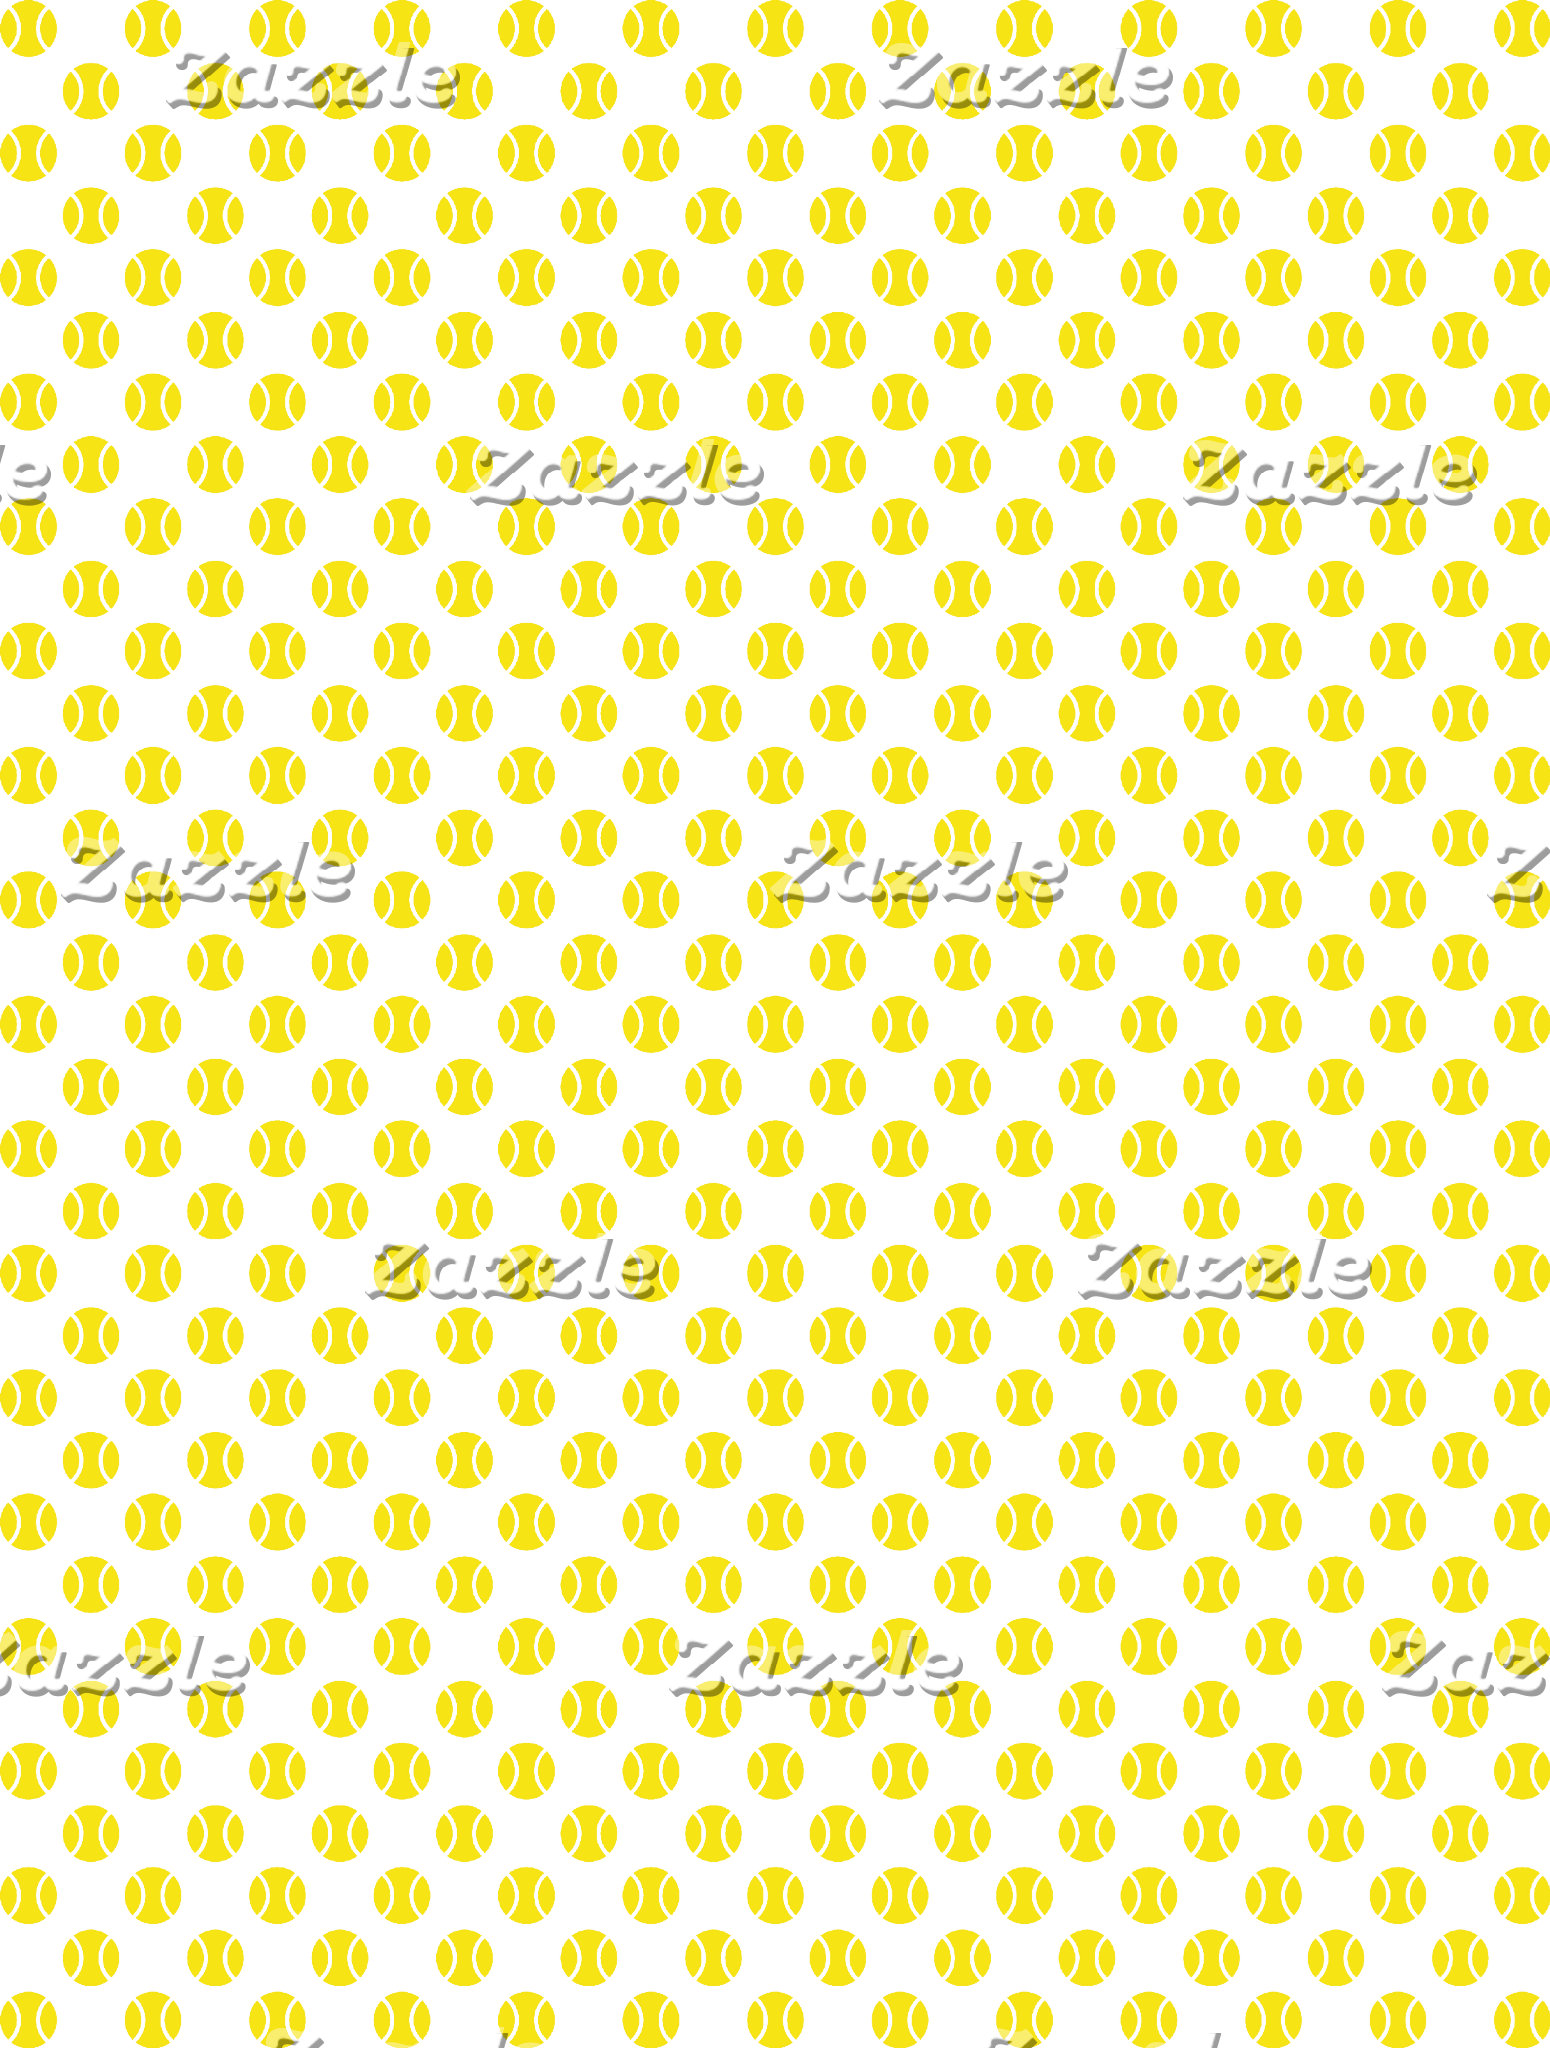 Tennis ball pattern